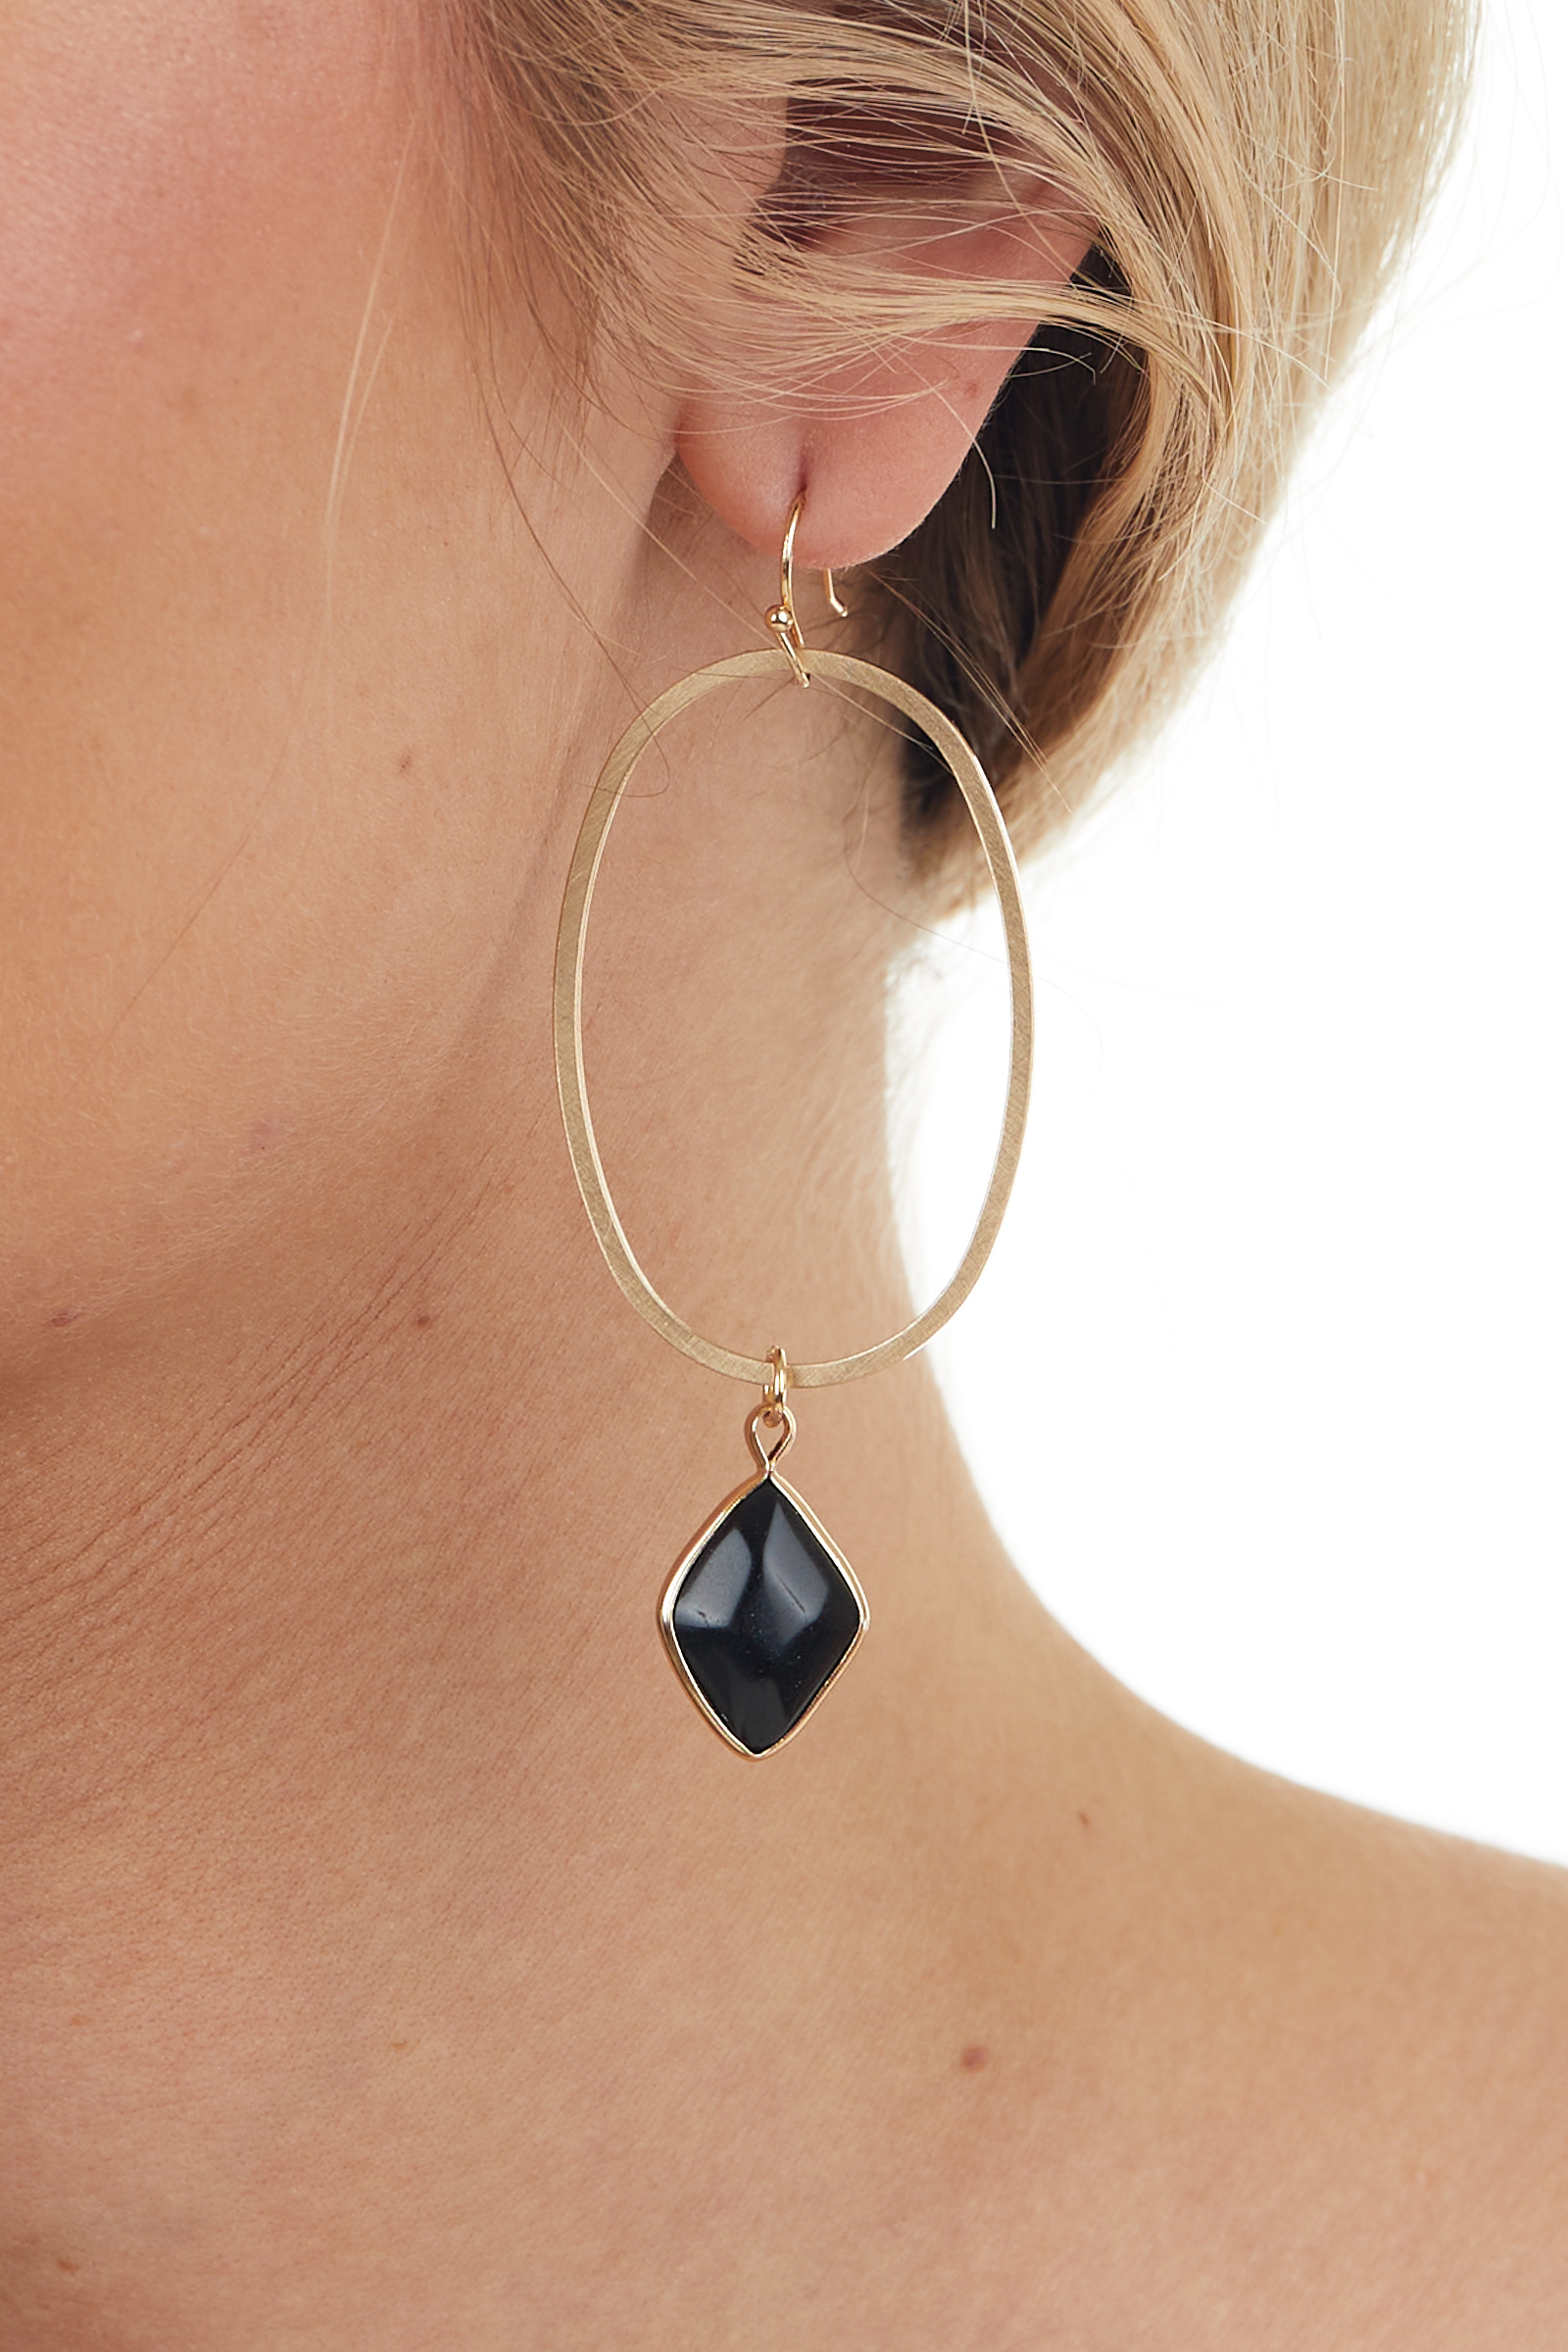 Brushed Gold Oval Earrings with Stone Pendant